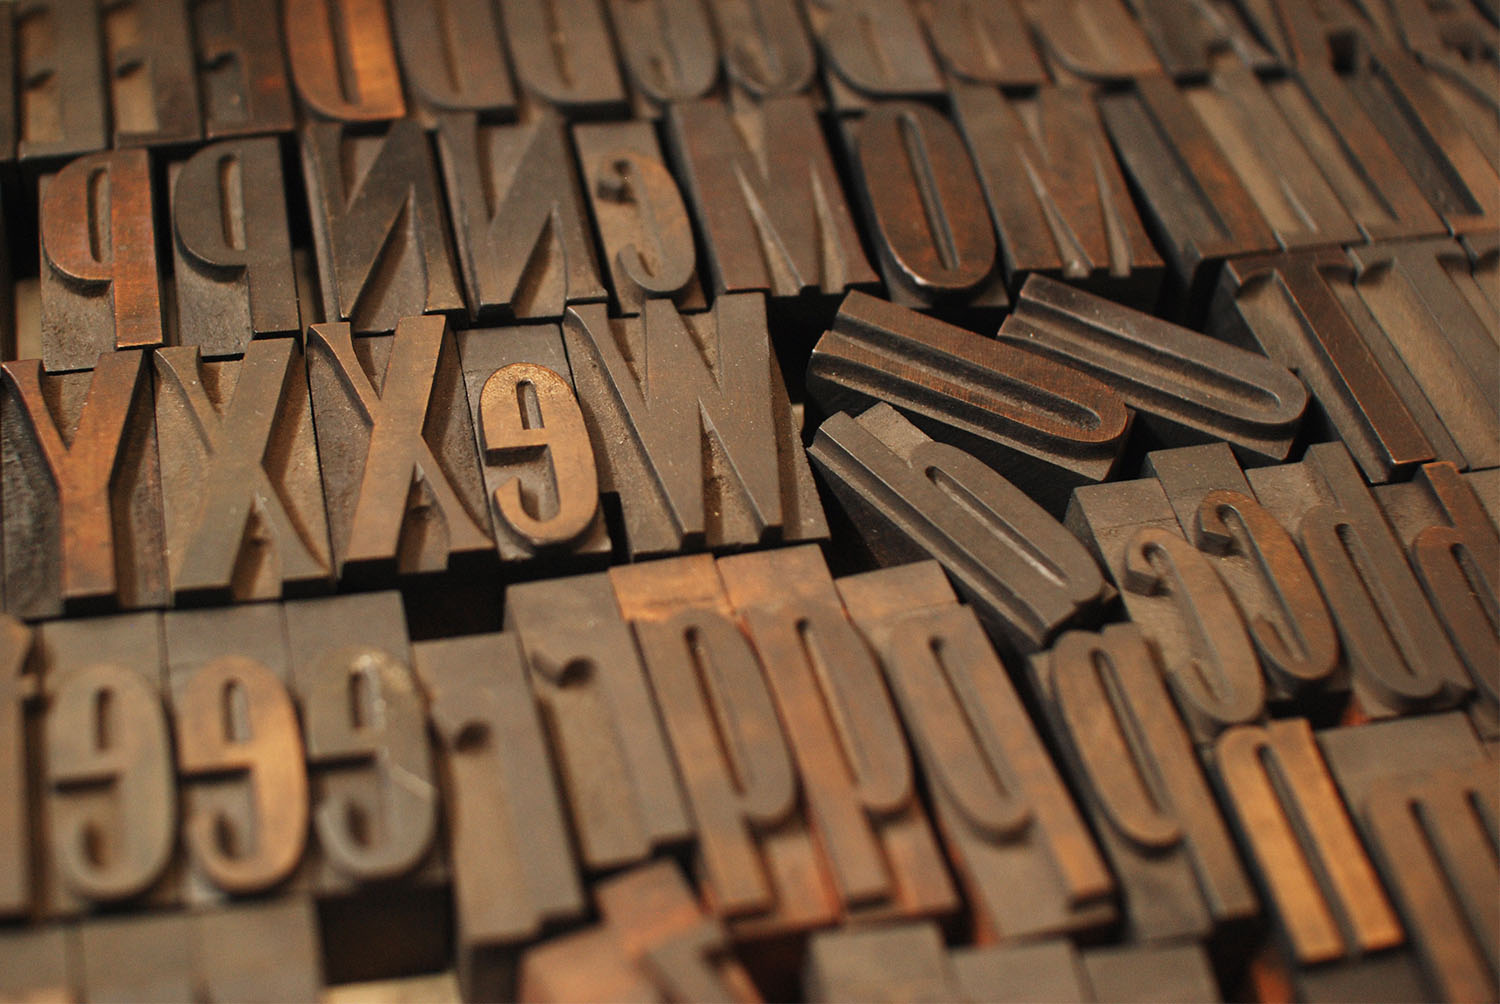 Gothic Modulated Wood Type in a Box